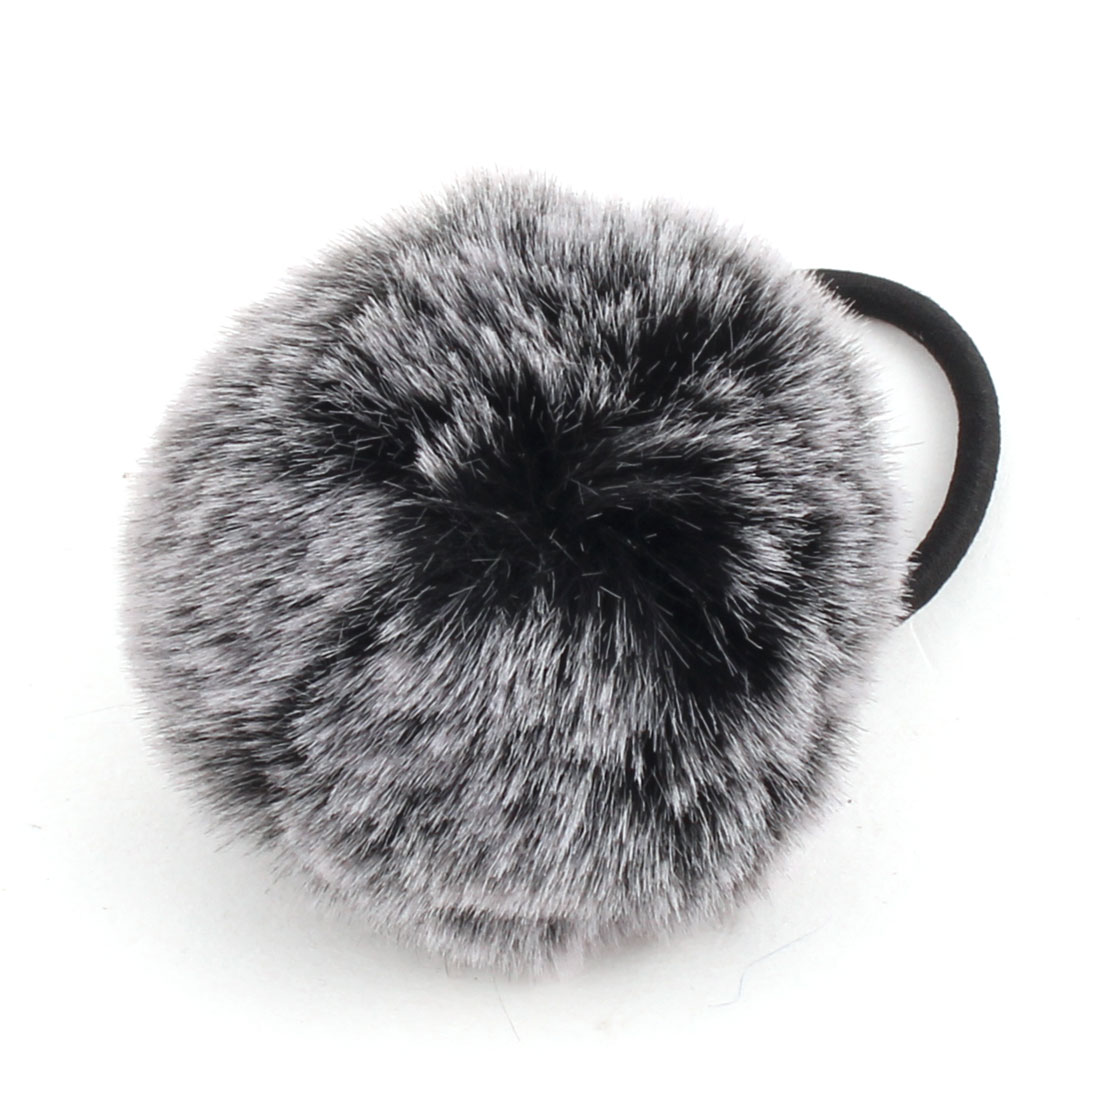 Faux Fur Ball Decor Stretchy Band DIY Hairstyle Hair Tie Ponytail Hairband Black